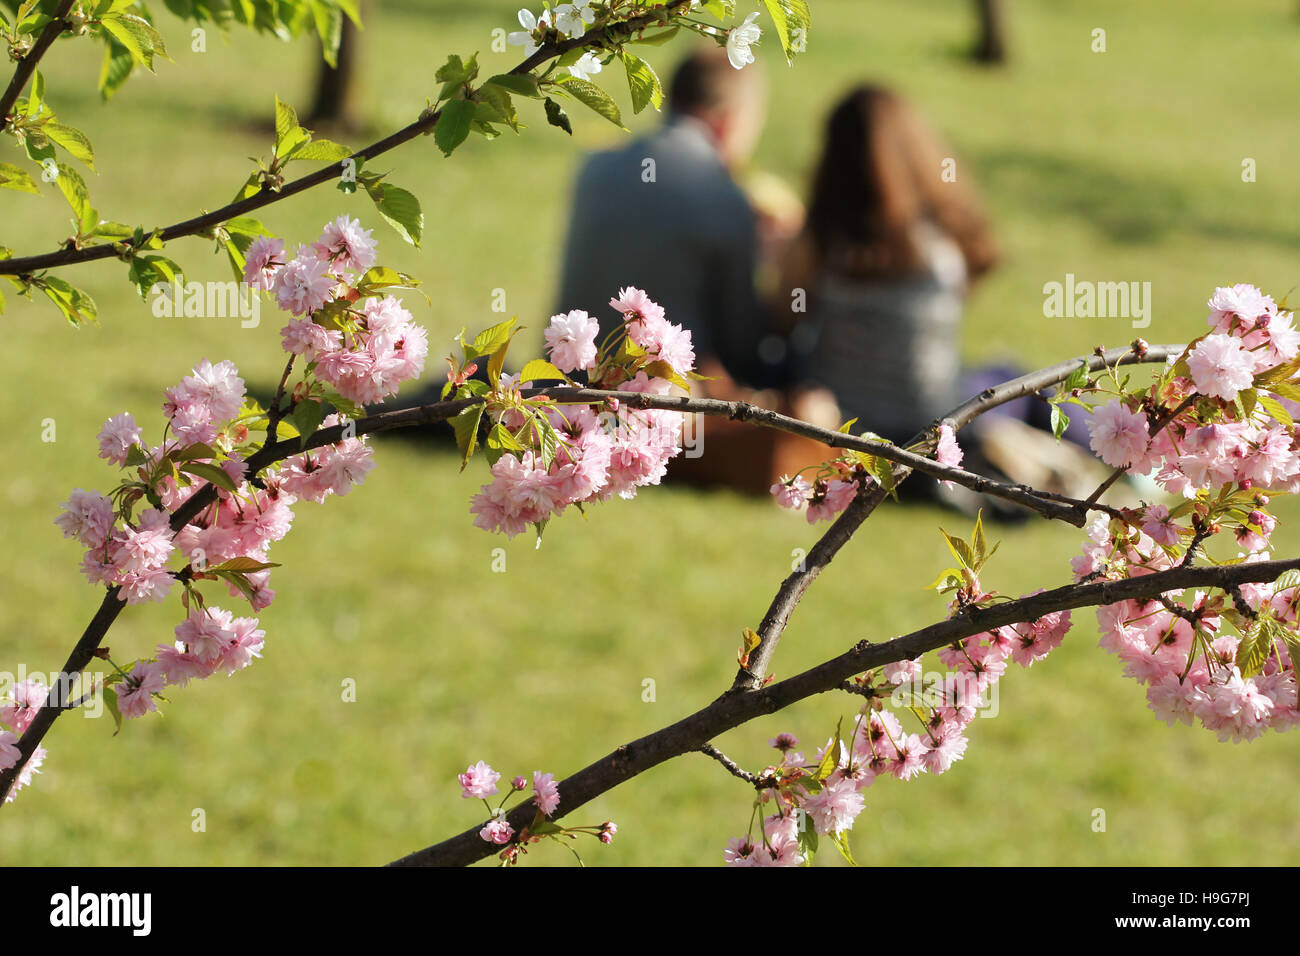 Sakura blooming . Romantic couple having a date under pink cherry blossom trees - Stock Image